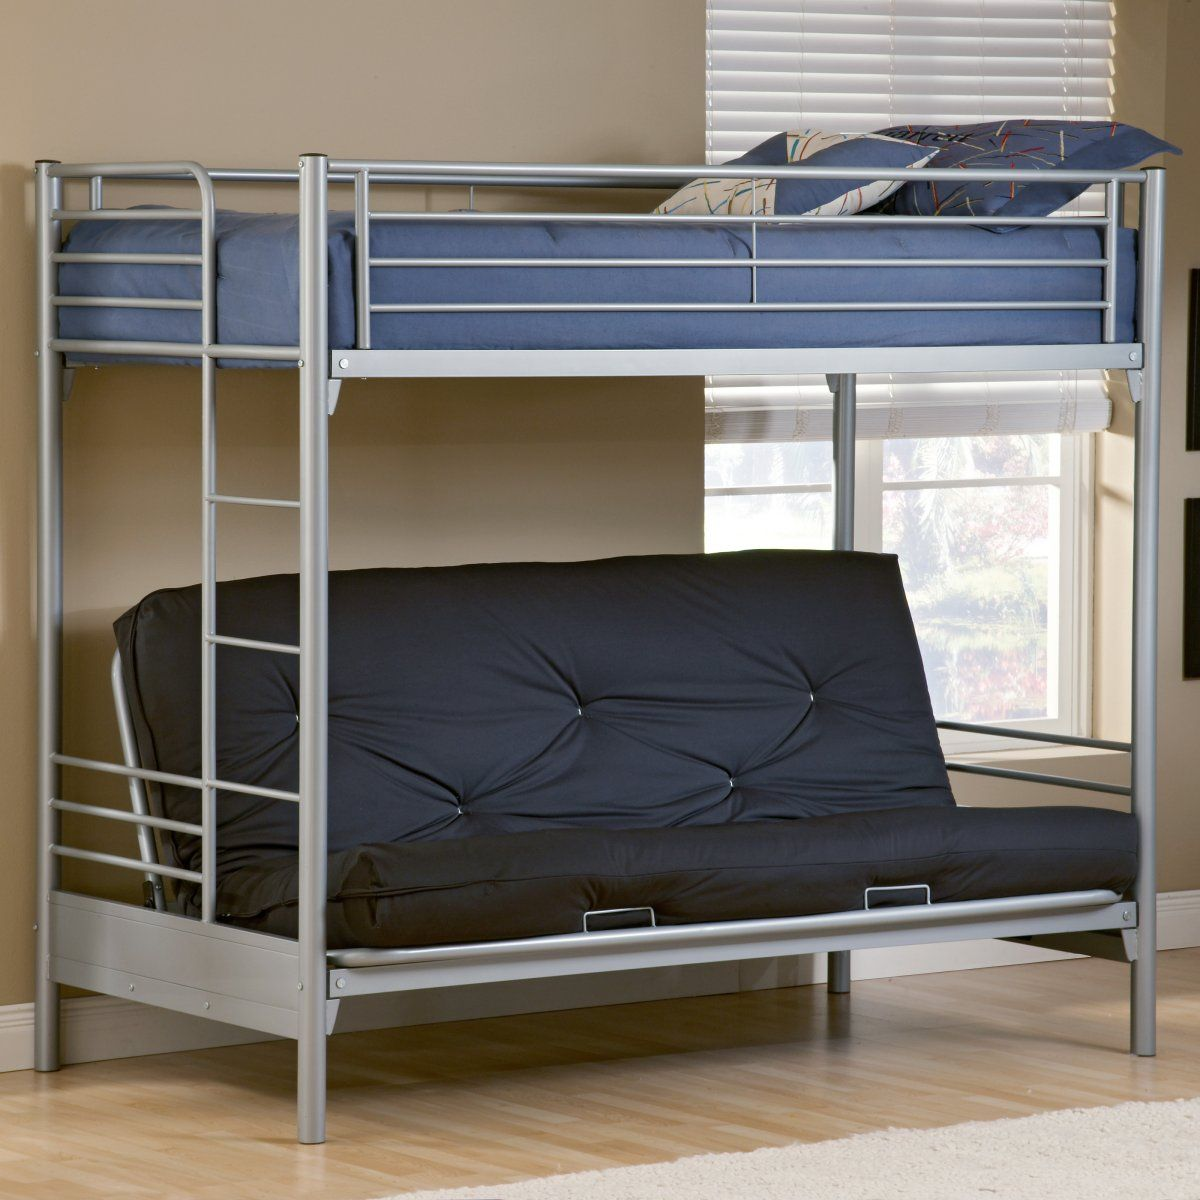 Couch Bunk Beds Loft Bed With Mattress Sleeper